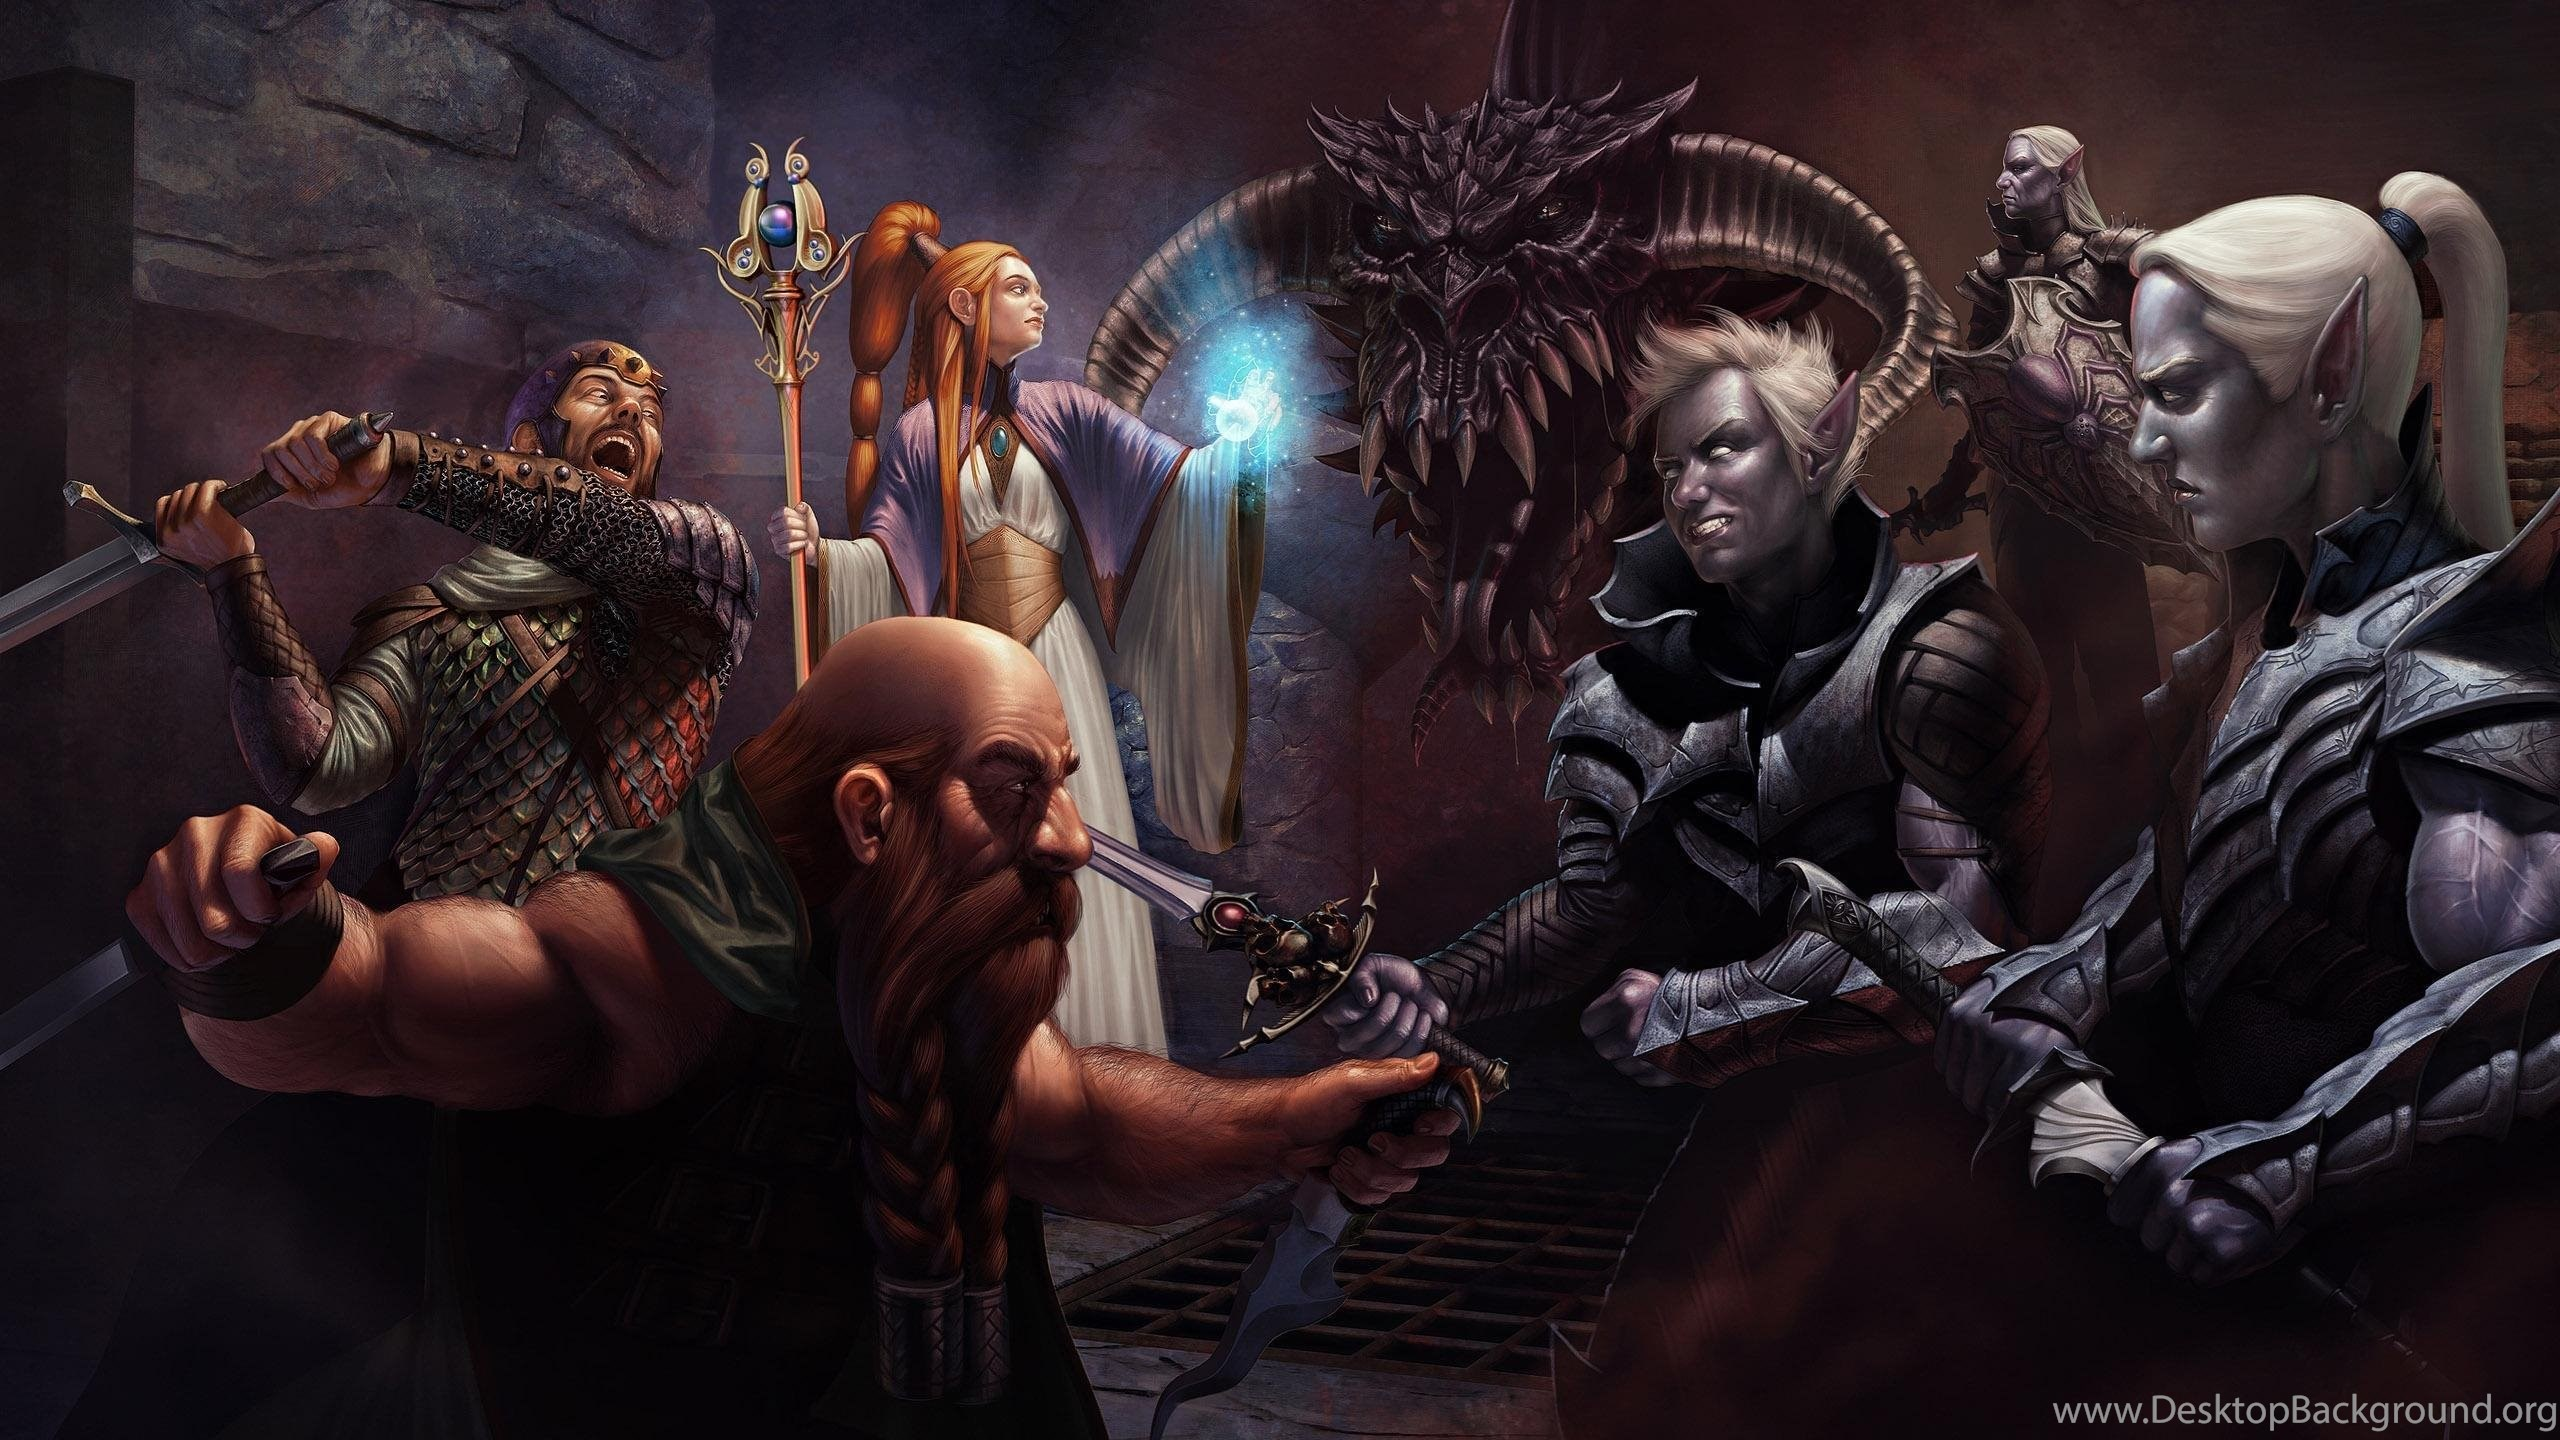 34 Dungeons Dragons Hd Wallpapers Desktop Background